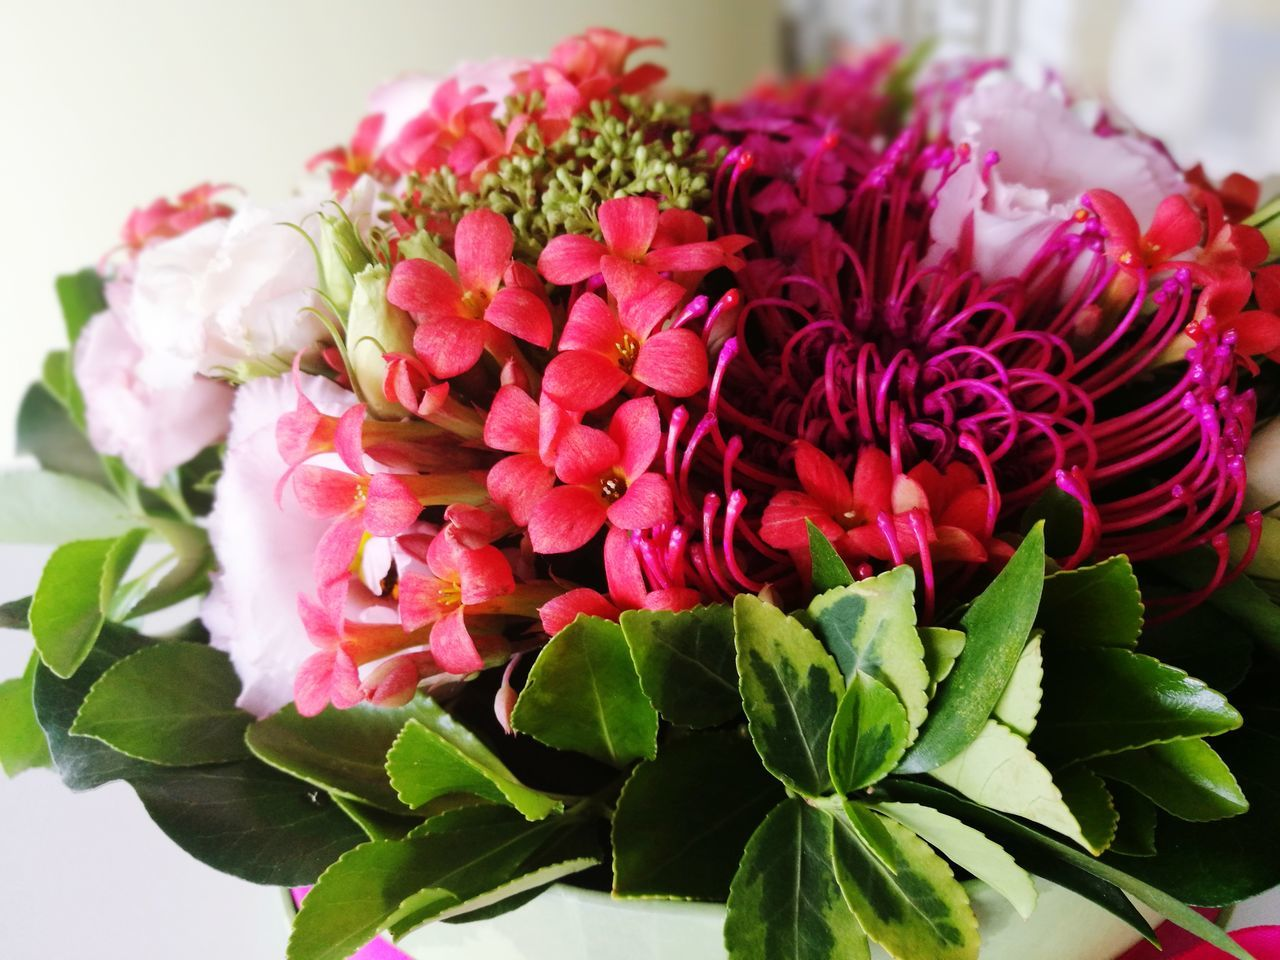 Flower Freshness Flower Head Plant Leaf Nature No People Fragility Close-up Bouquet Beauty In Nature Peony  Day Indoors  Colorful Grateful Goodbye International Women's Day Mothersday Mother's Day Honour